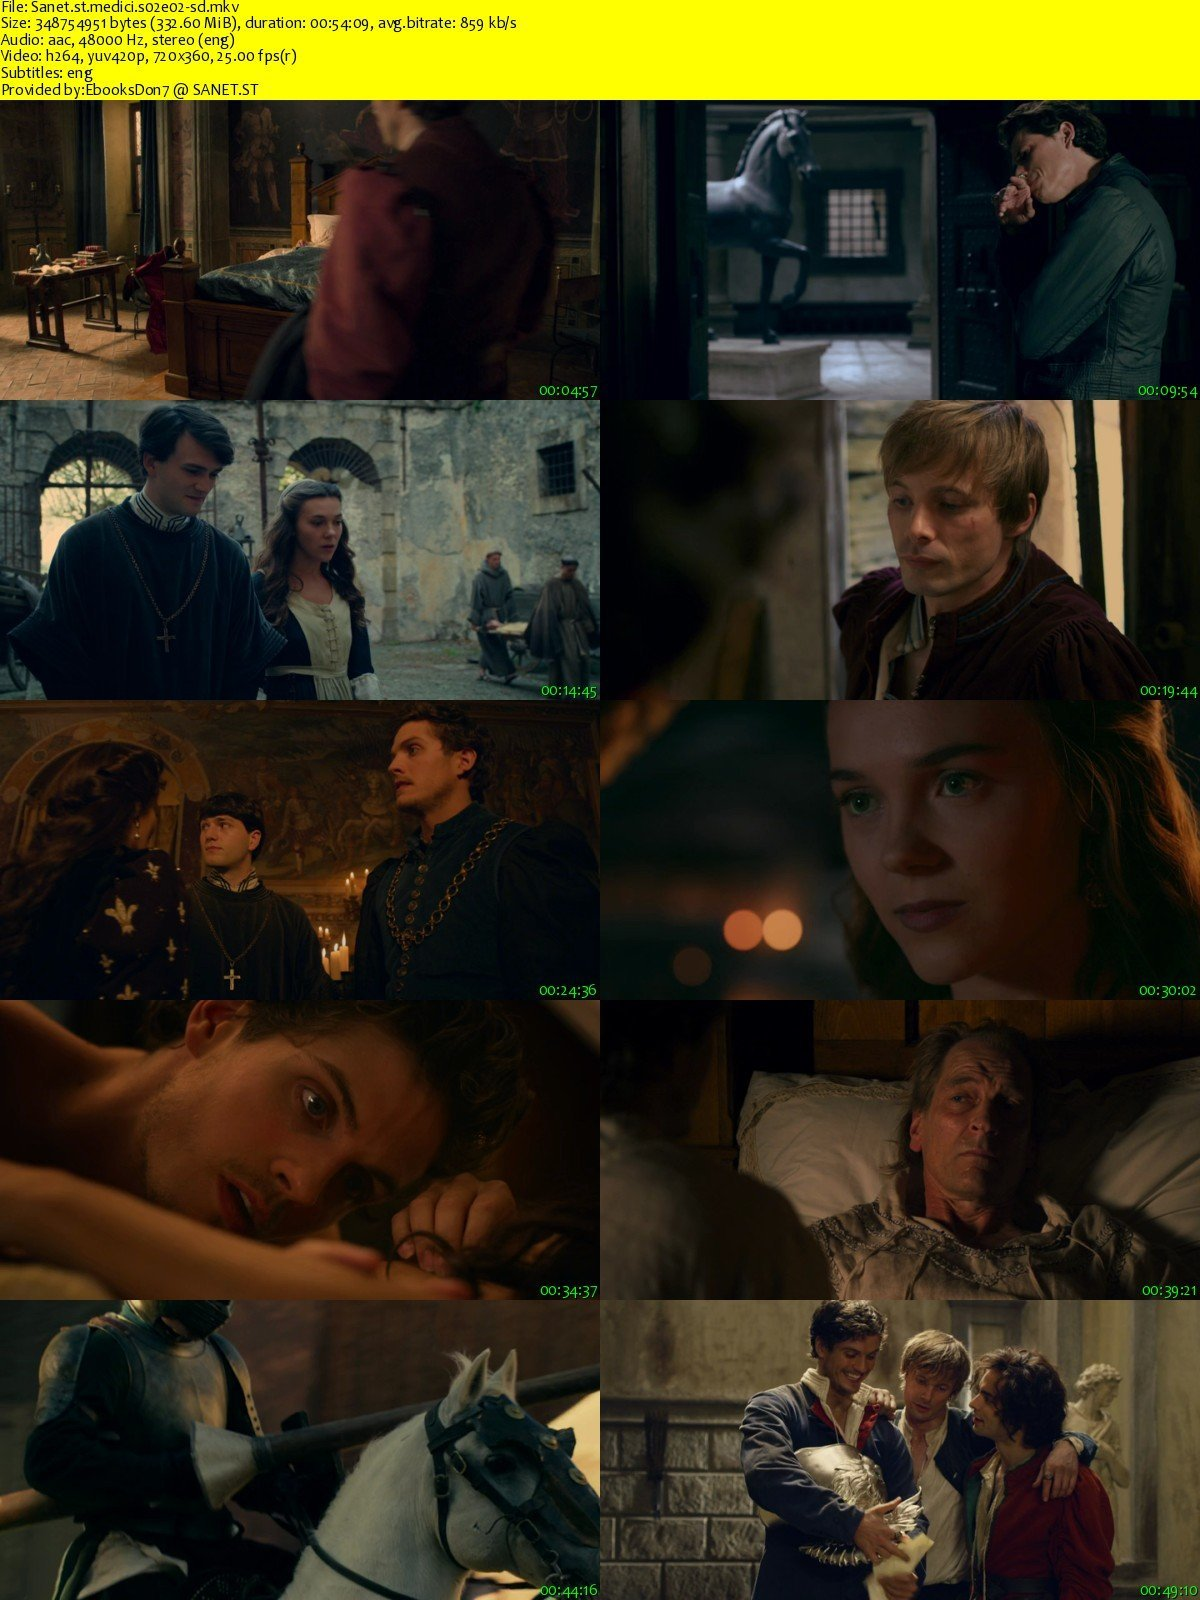 Annabel Scholey Medici download medici s02 bdrip x264-guacamole - softarchive